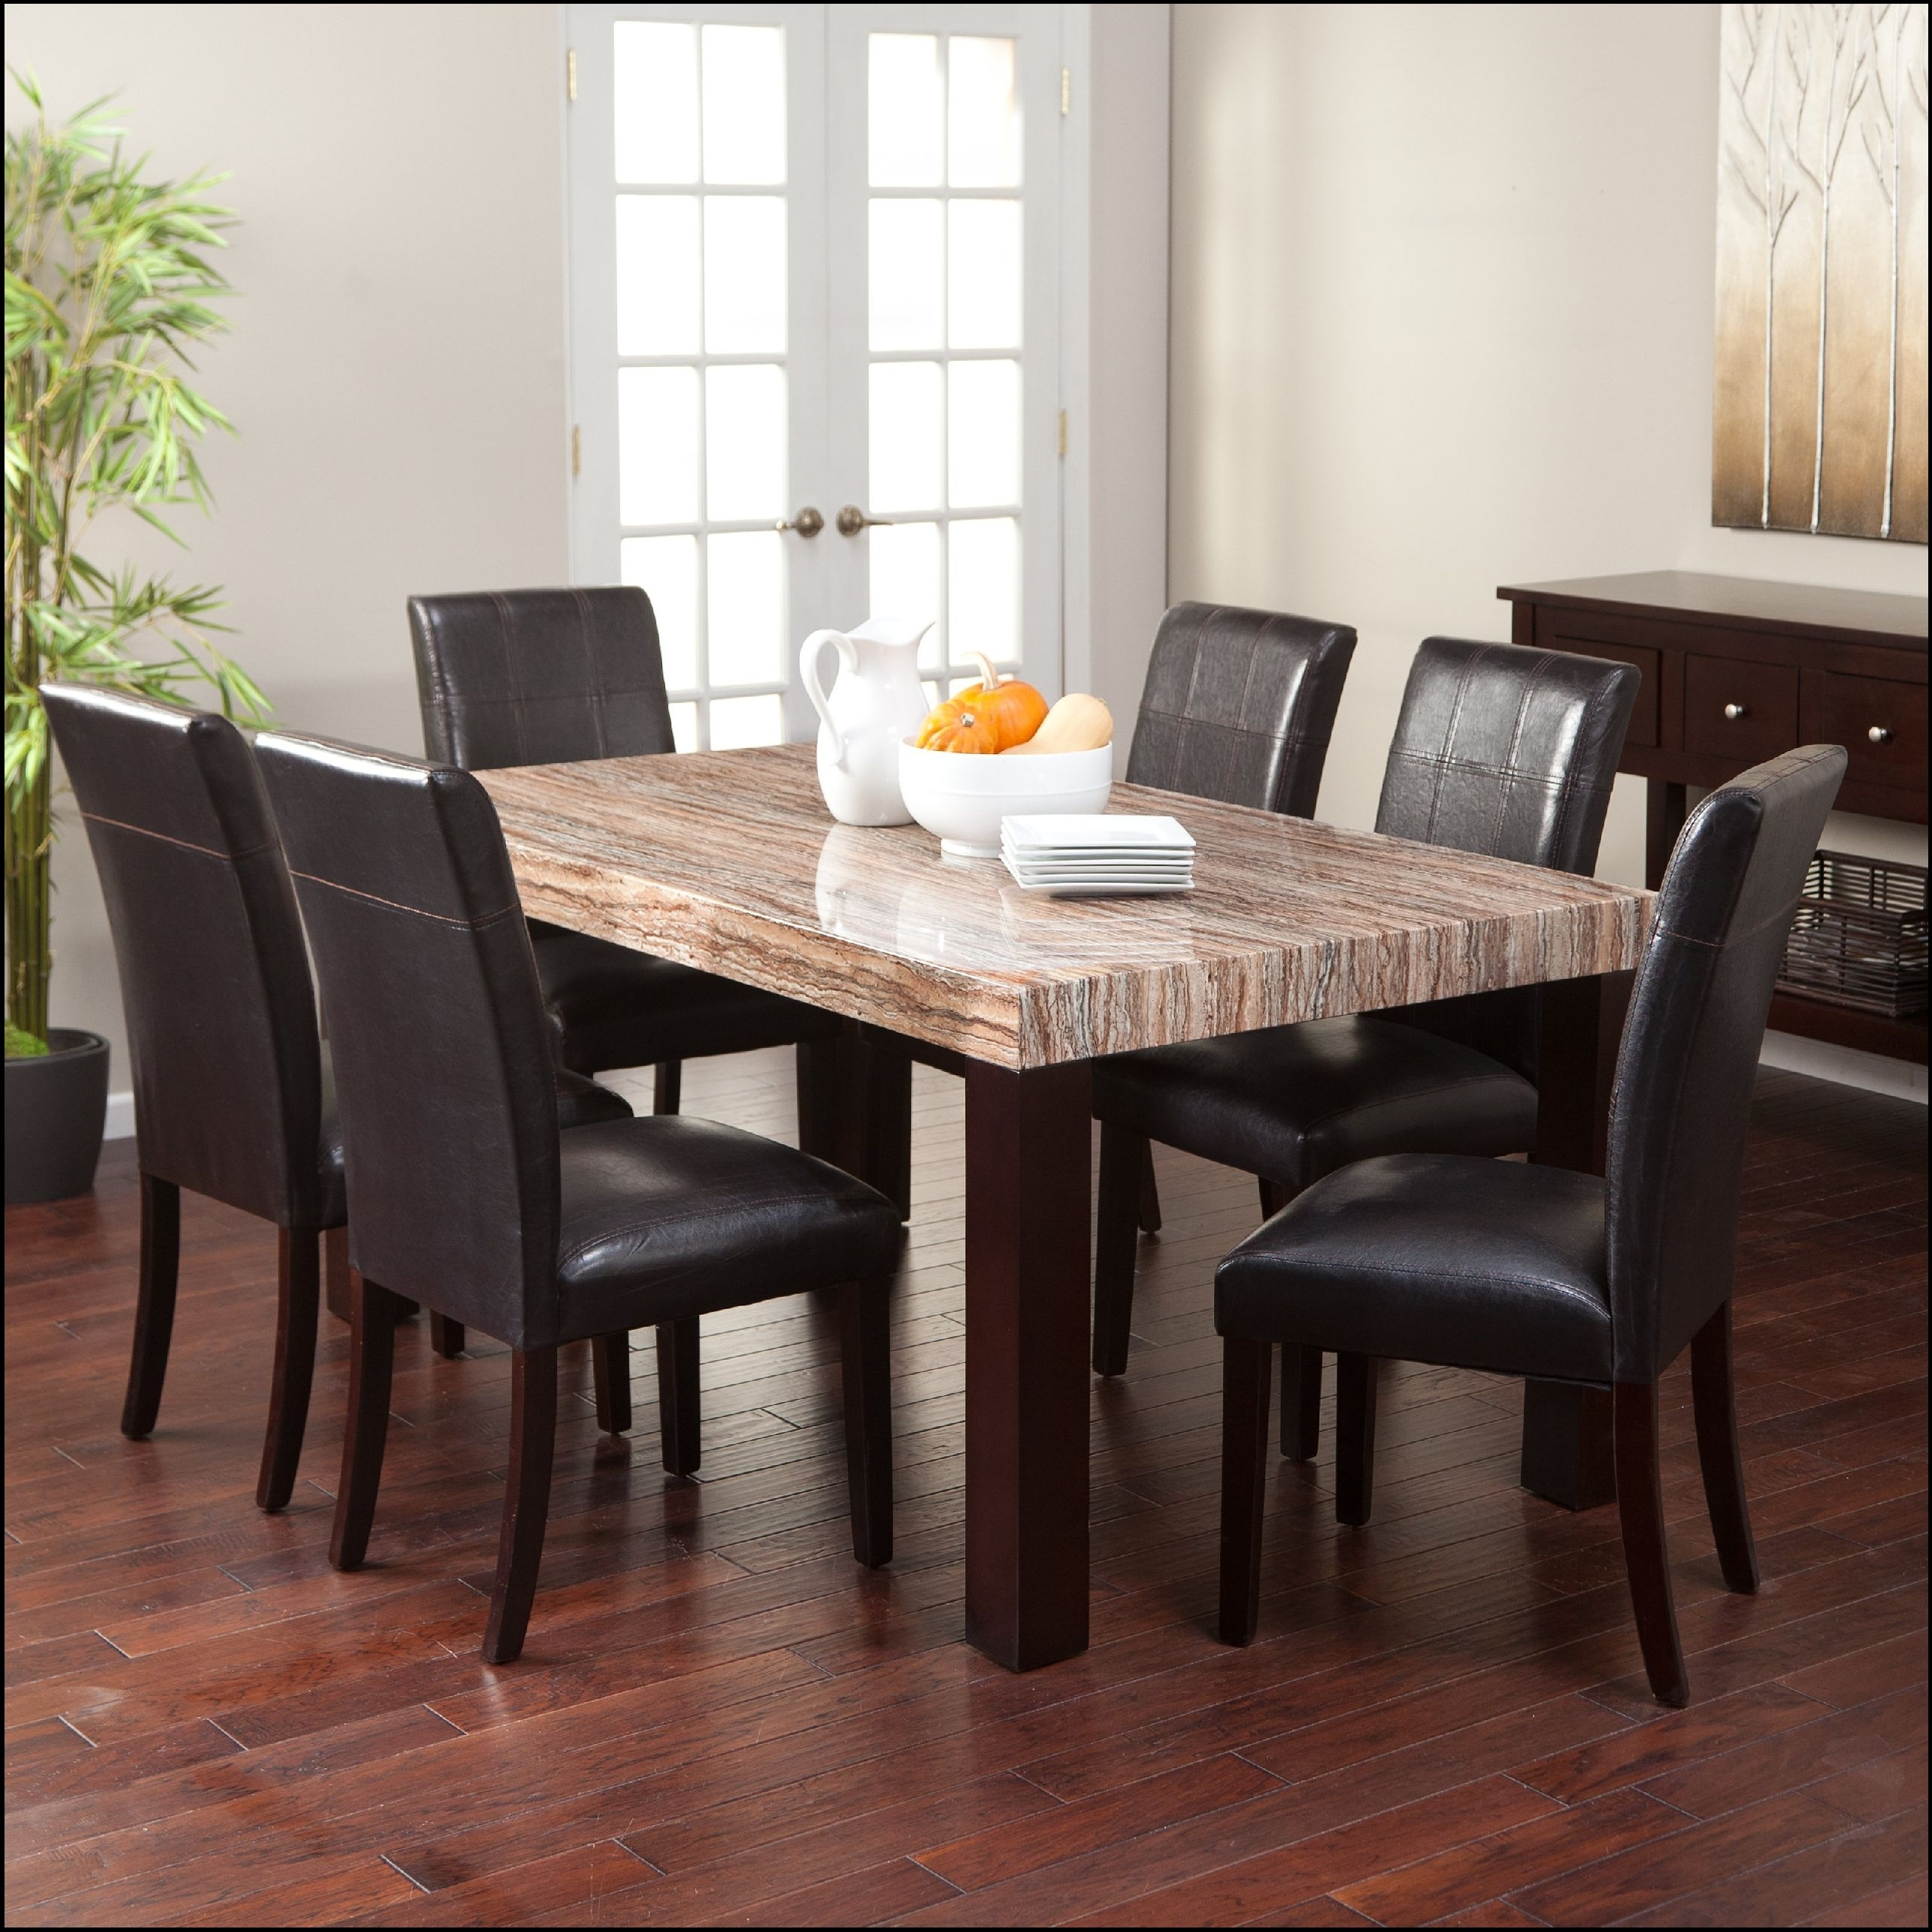 Palazzo Rectangle Dining Tables Pertaining To 2018 Great Finley Home Palazzo 6 Piece Dining Set With Bench With Looking (View 13 of 25)